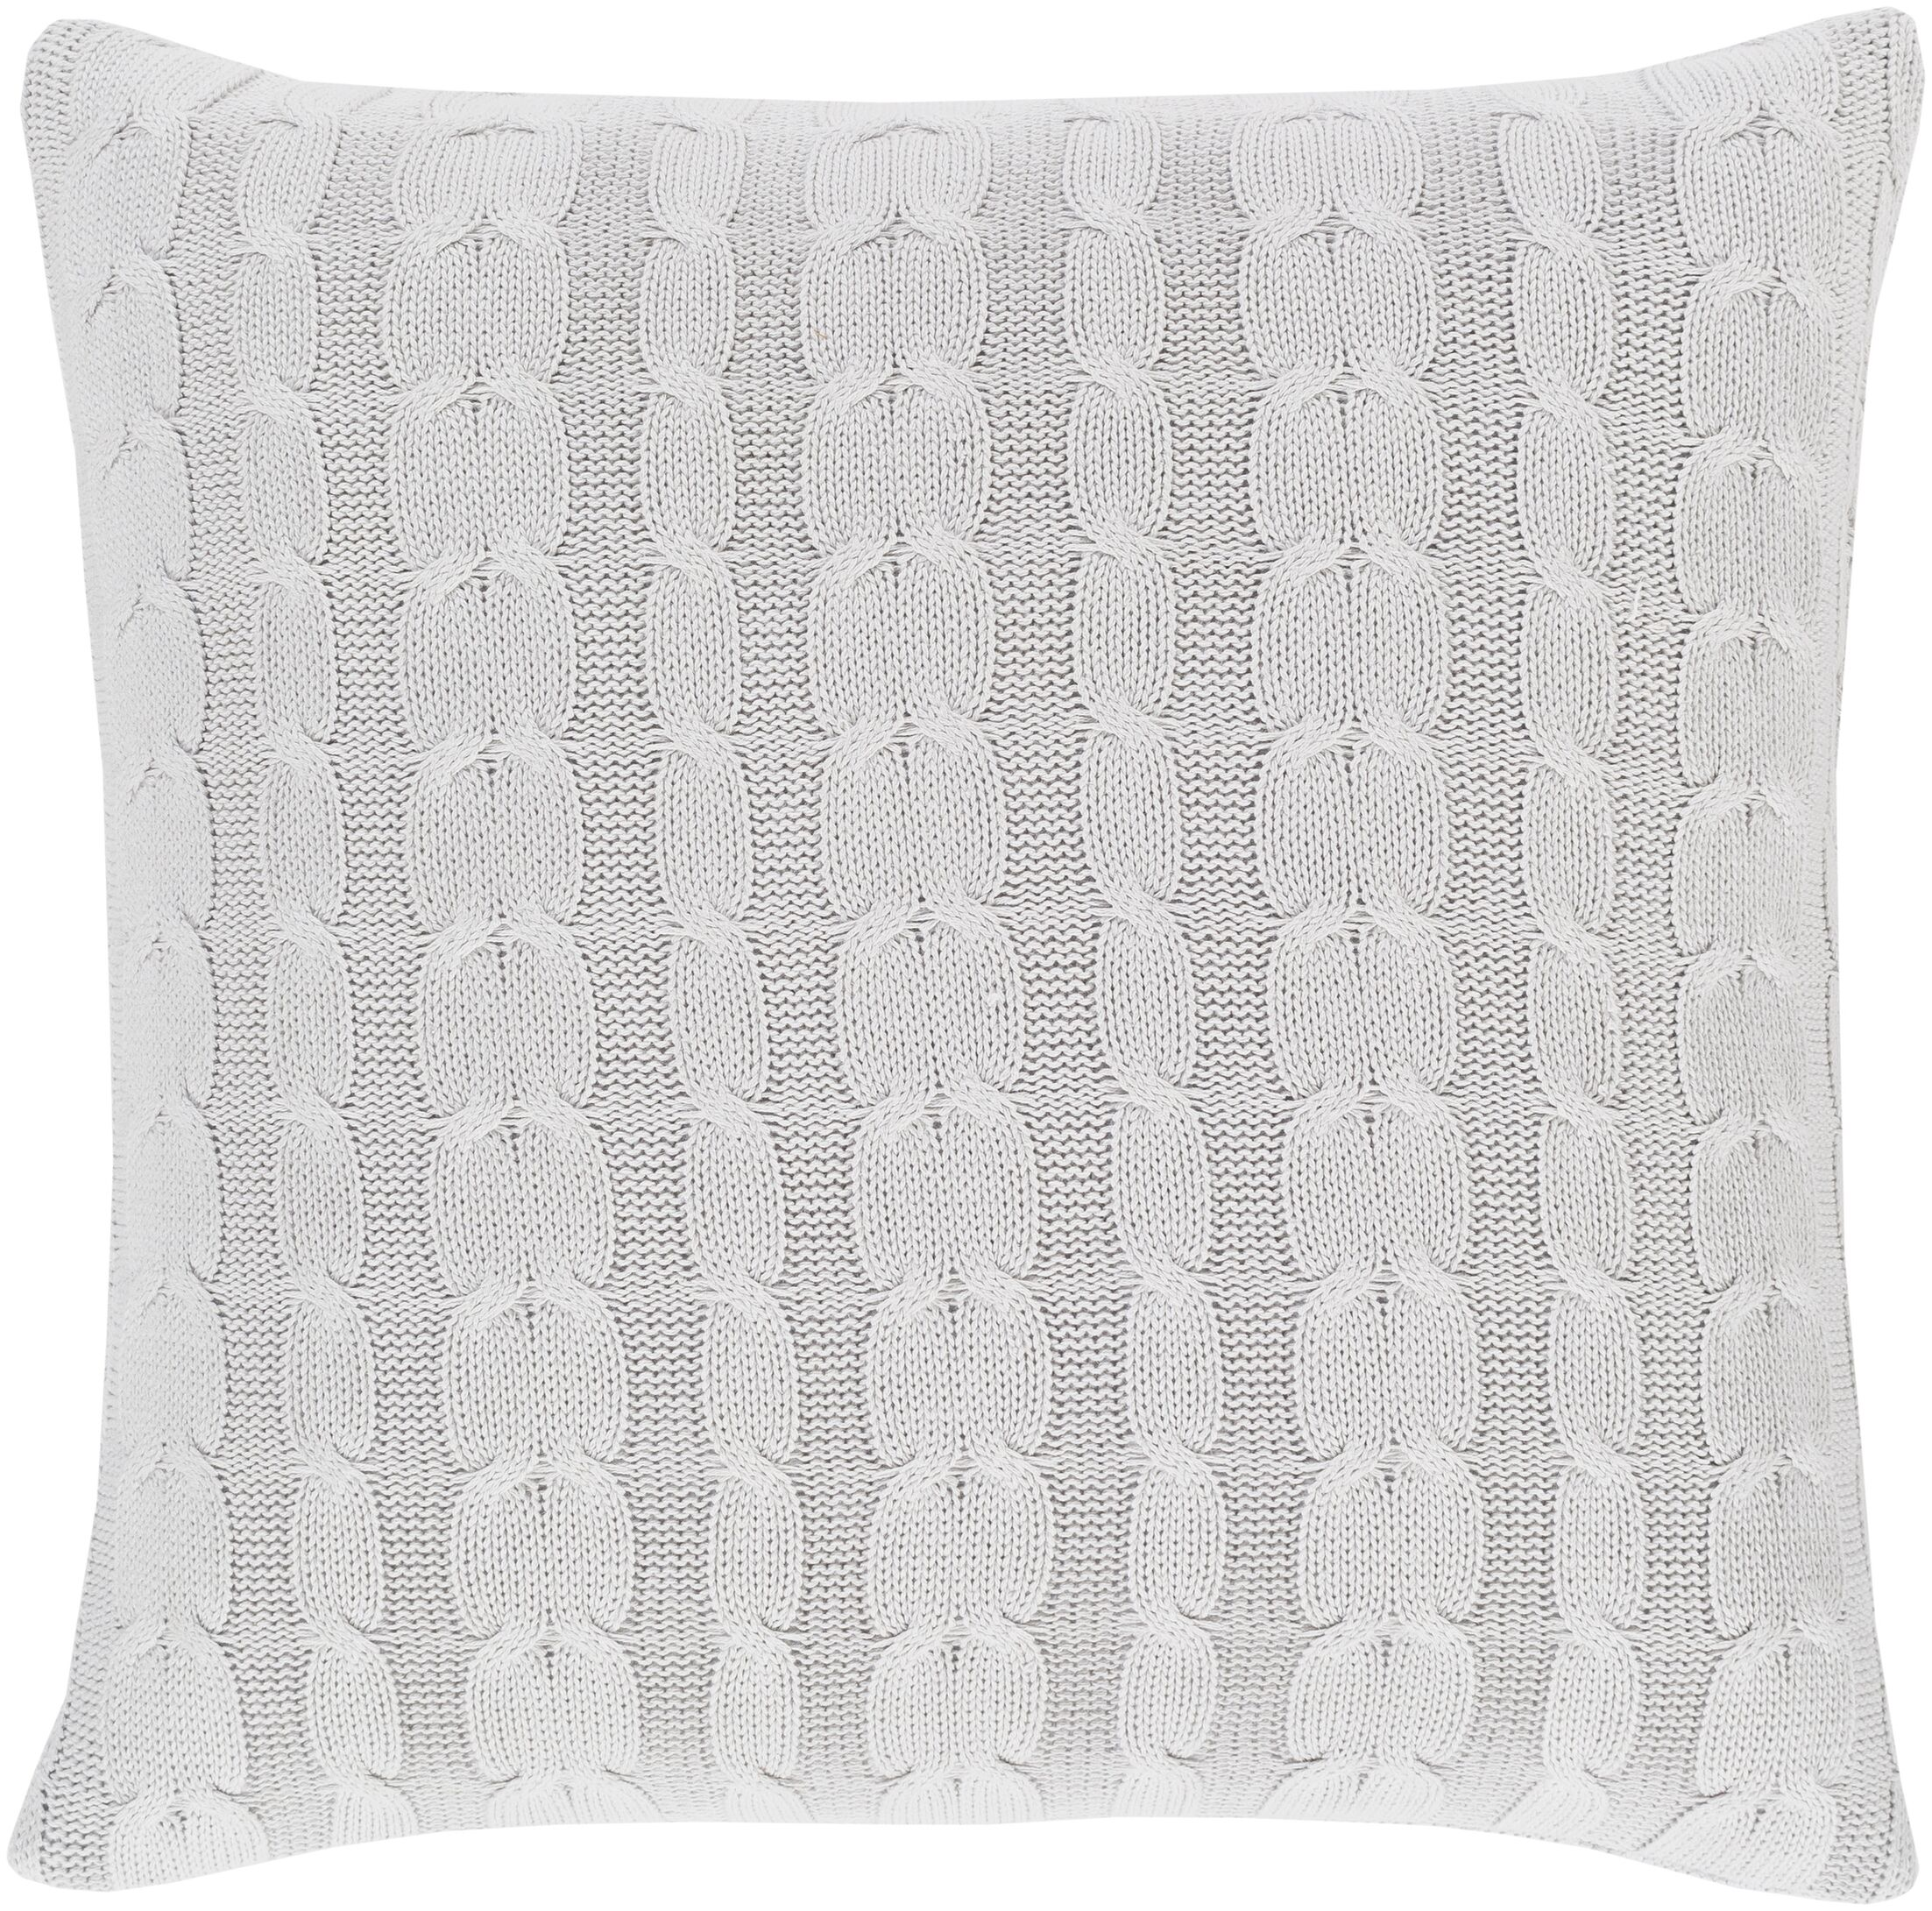 Gardiner 100% Cotton Throw Pillow Fill Material: Down Fill, Color: Light Gray